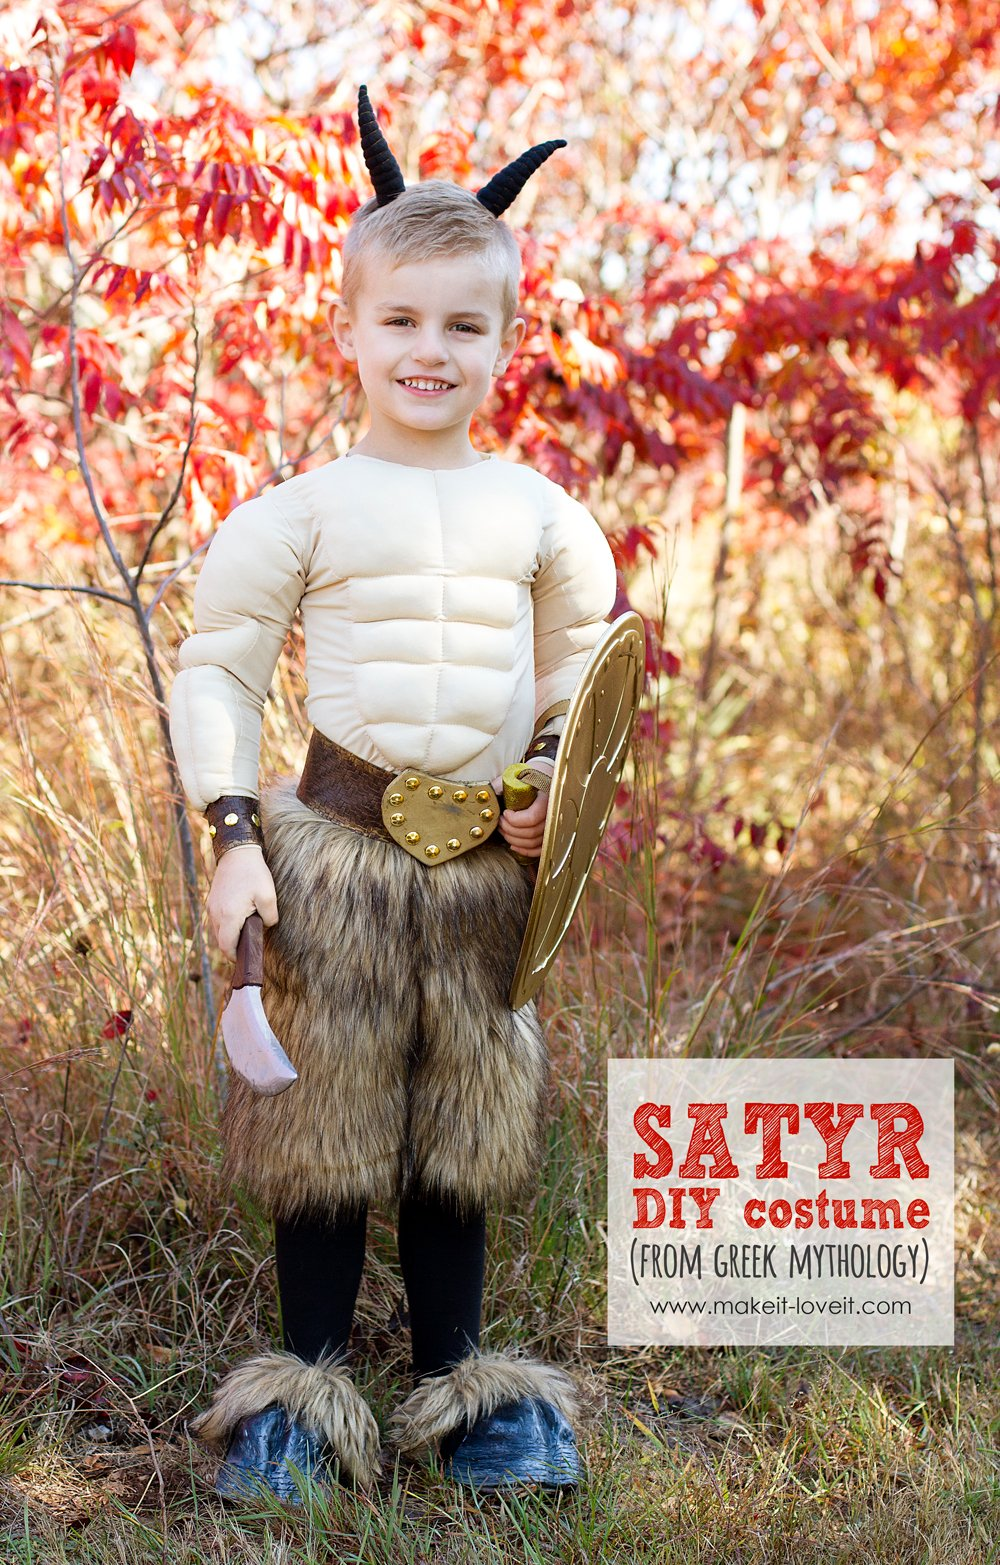 Diy greek mythology costume: satyr